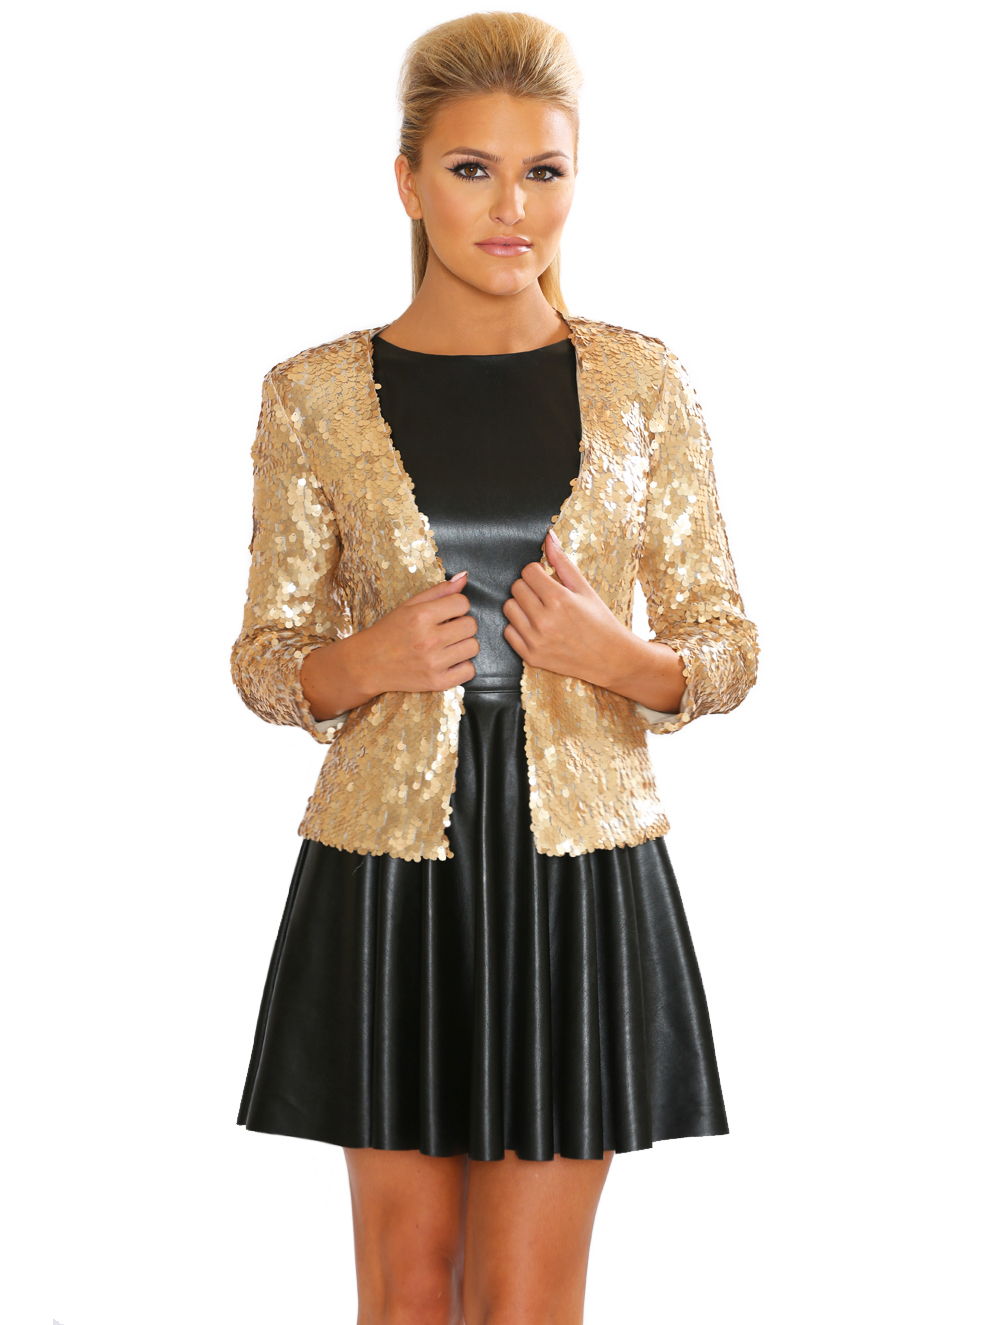 Honey Sequin Cardigan - Soraya By Rozi